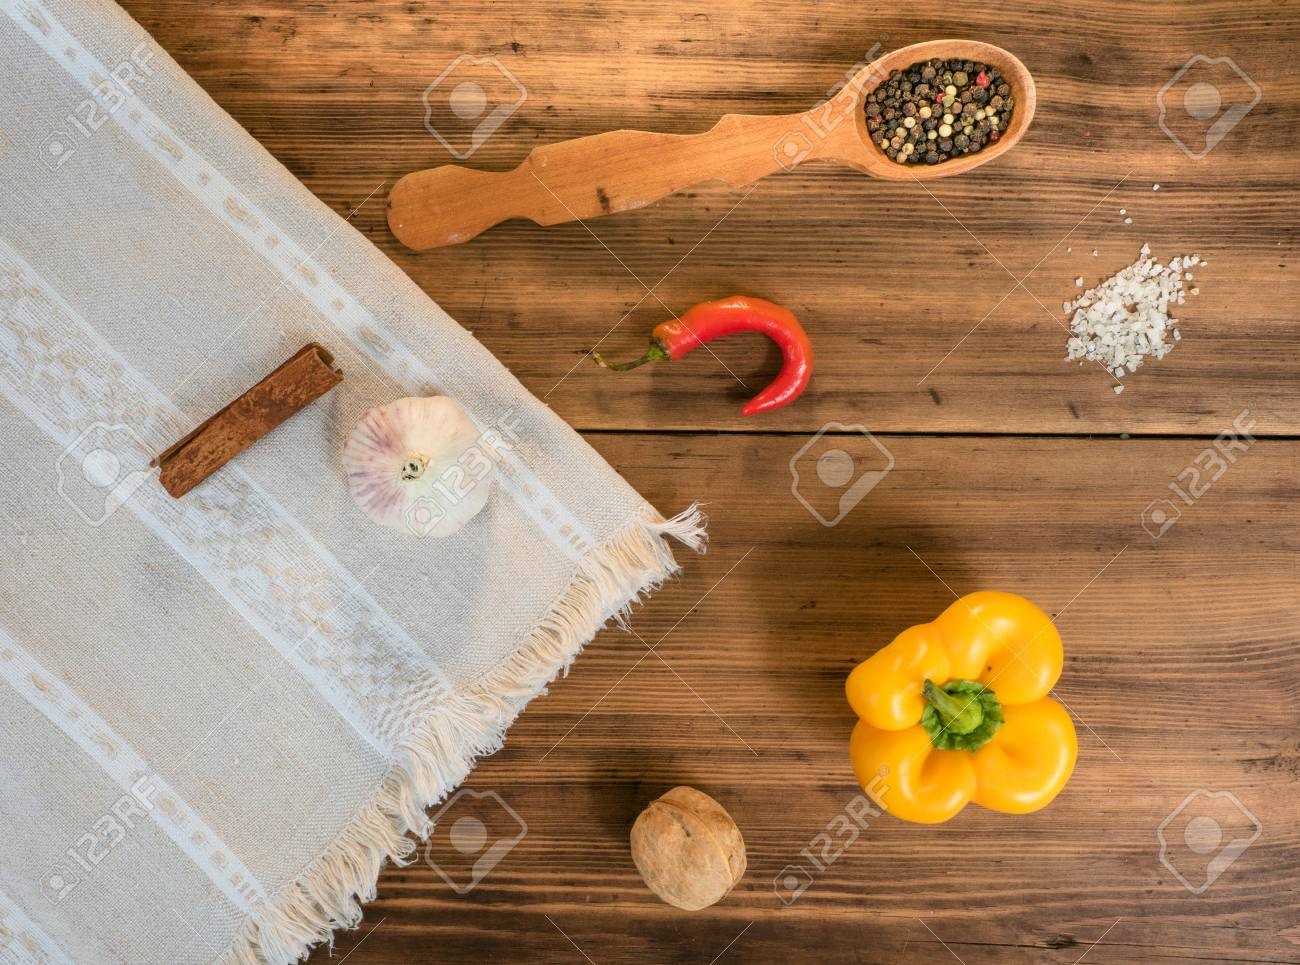 Still Life In Country Style On A Background Of Old Wood And Tablecloths.  Arrangement Of